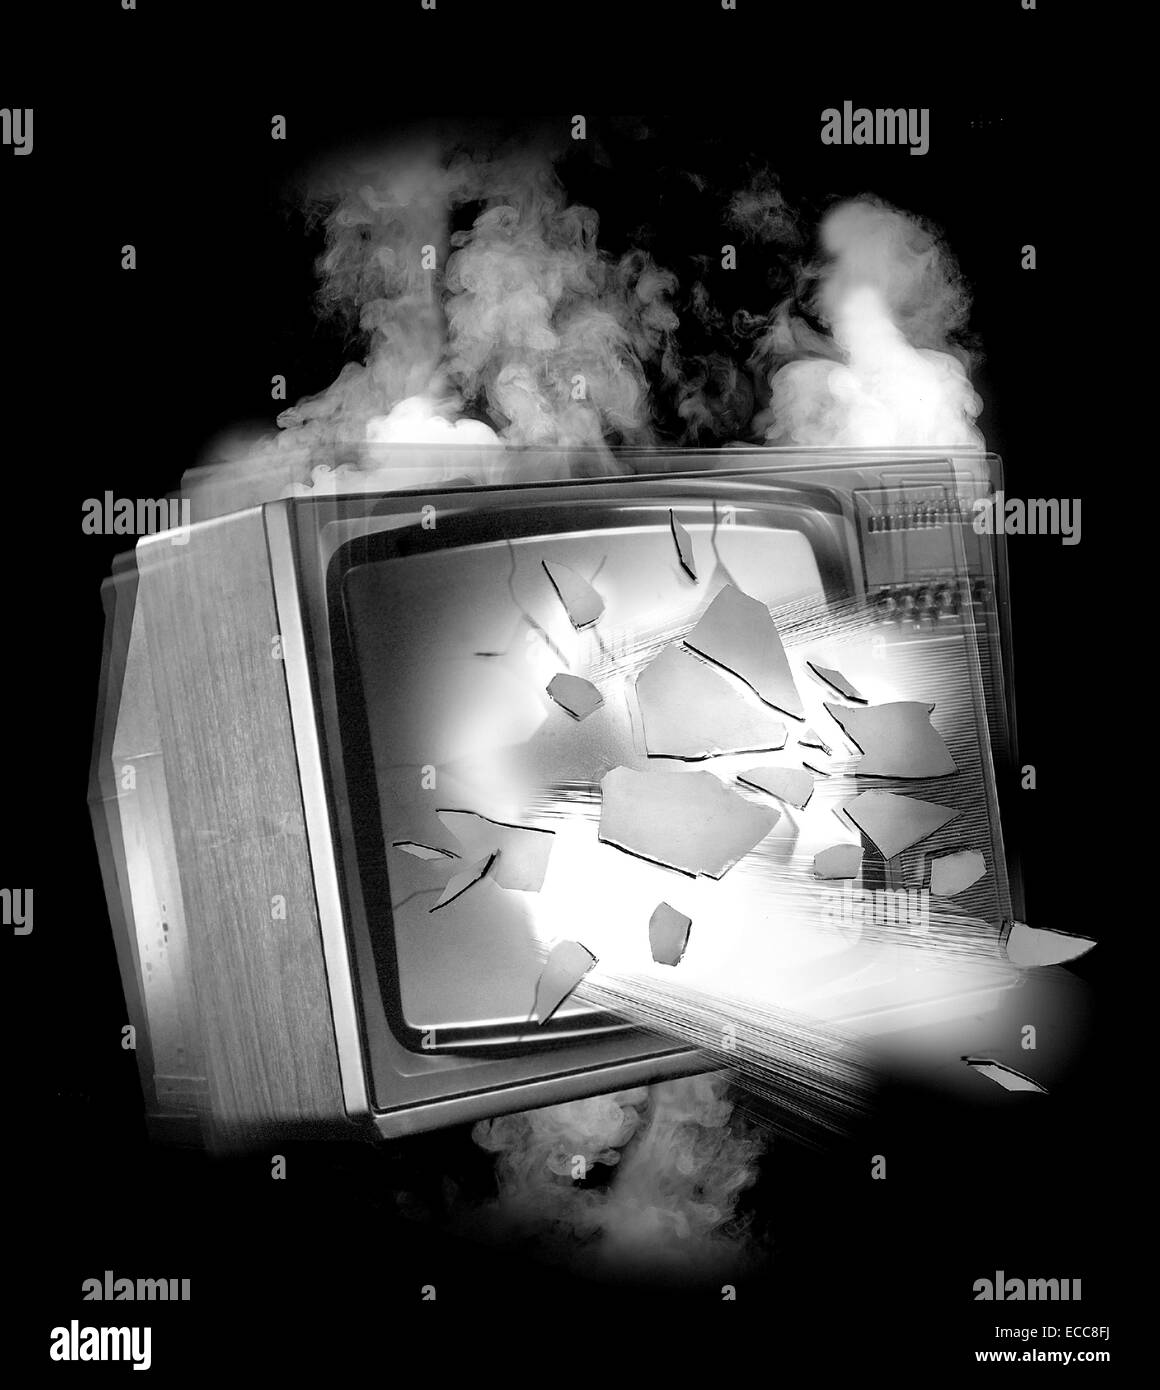 A black and white conceptual image of an old television set exploding - Stock Image